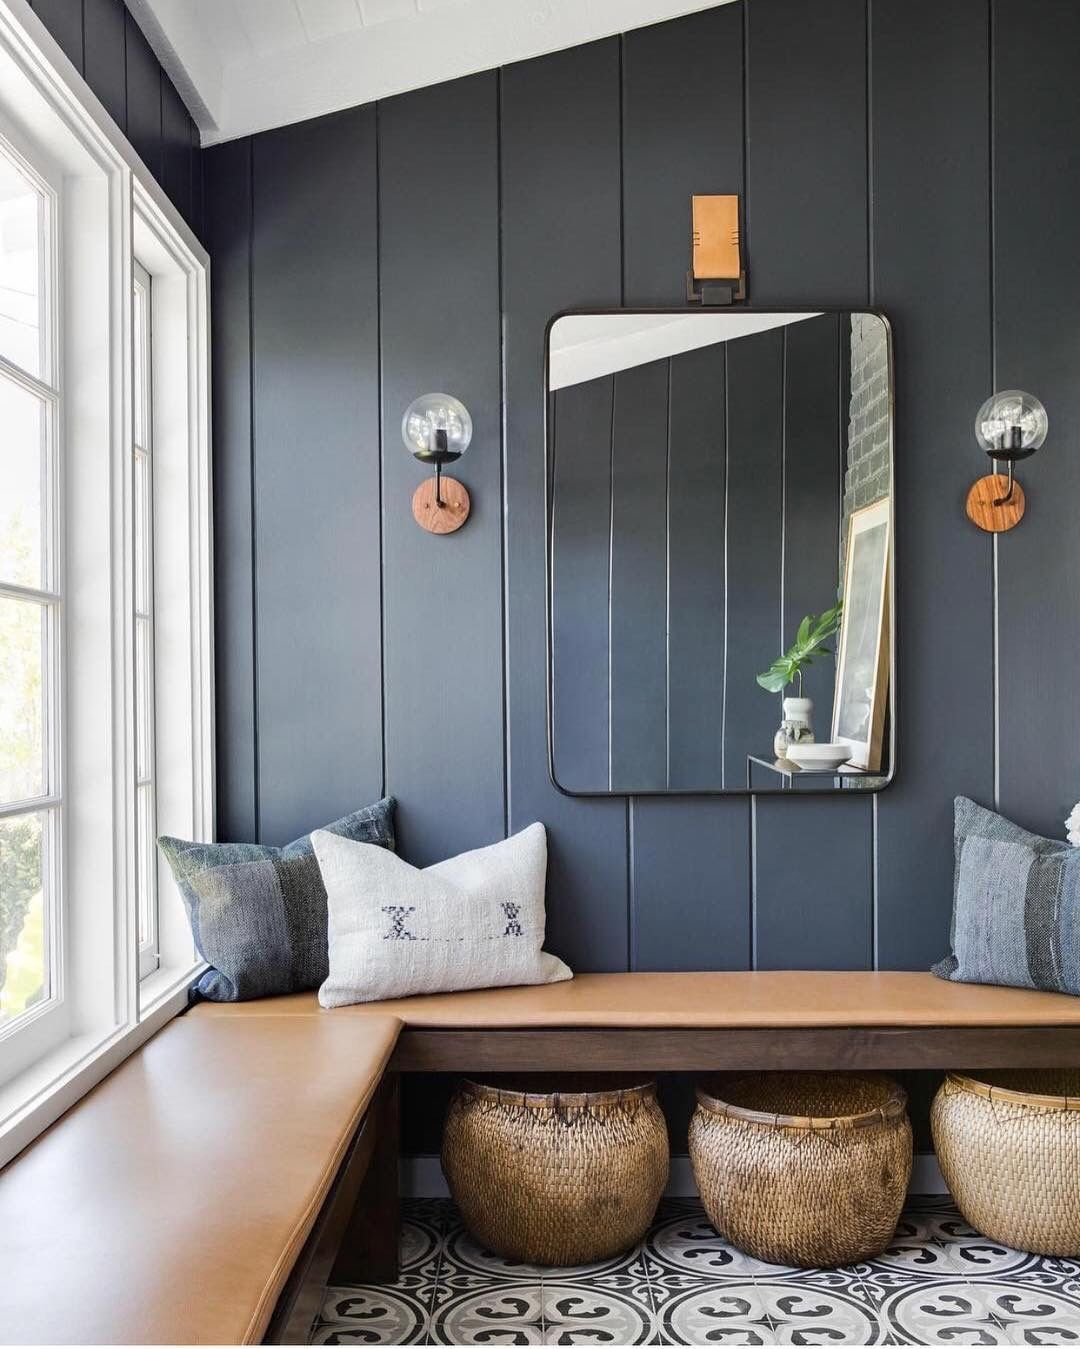 Feast Your Eyes Gorgeous Dining Room Decorating Ideas: Vertical Wide Shiplap Planks To Trick Your Eyes Into